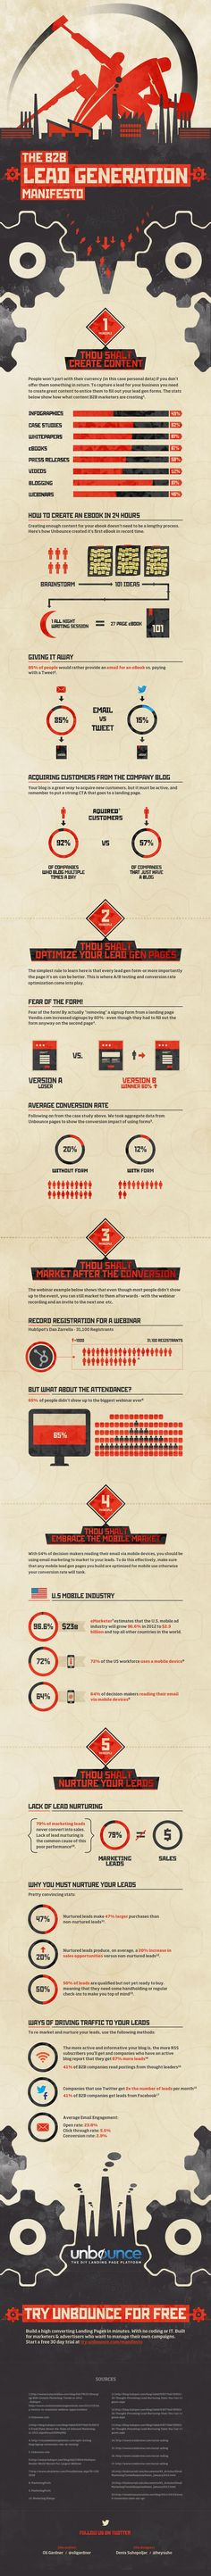 The Fundamentals Of Online B2B Lead Generation #Infographic socialmouths